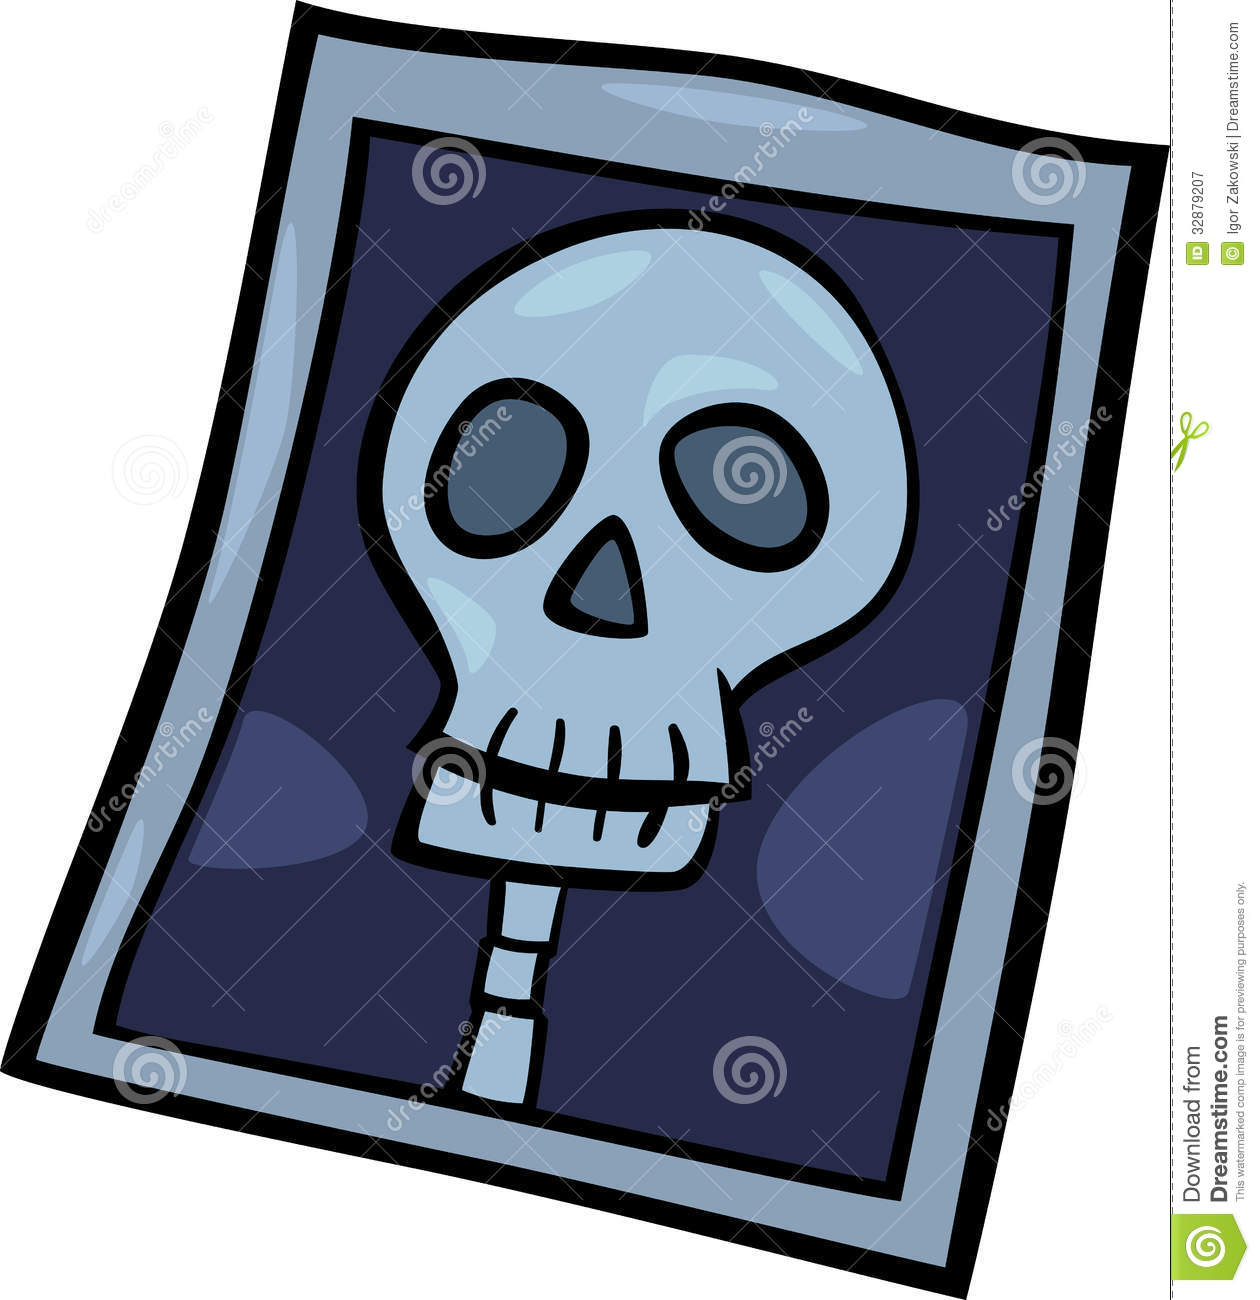 clipart xray - photo #49